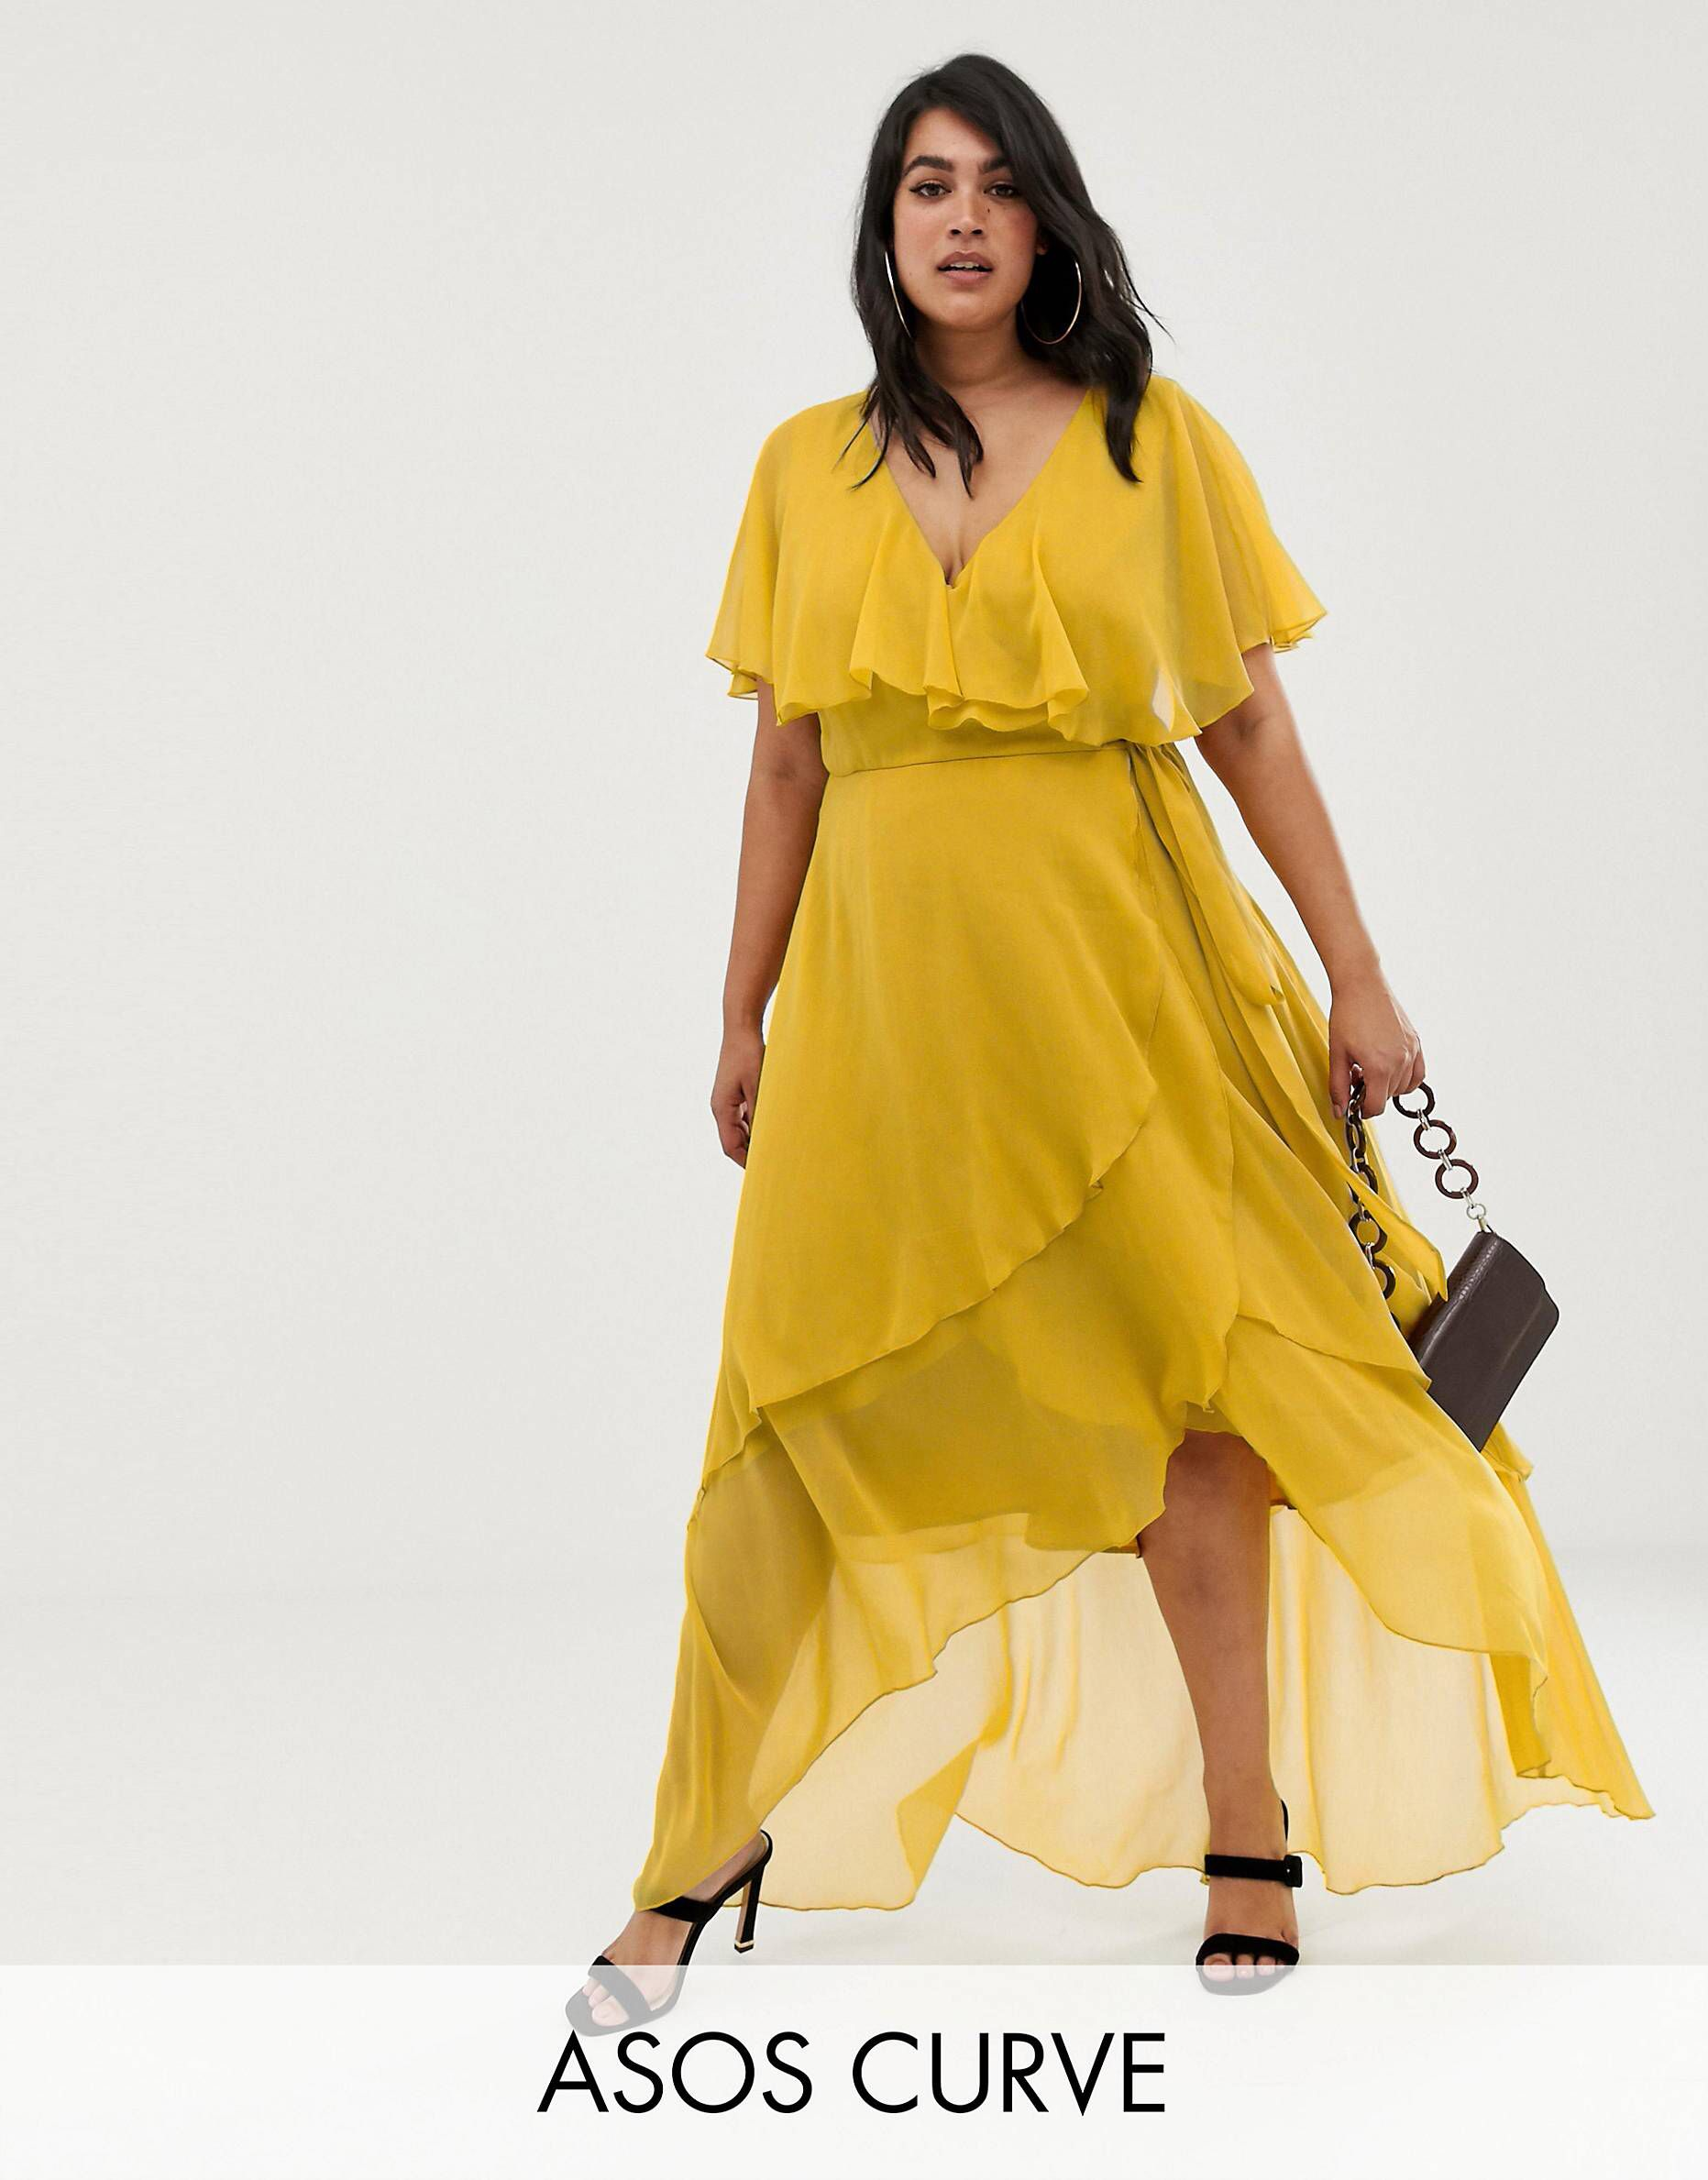 Pin By Adamsel In This Dress On The Best Plus Size Brands Dresses Plus Size Outfits Maxi Dress